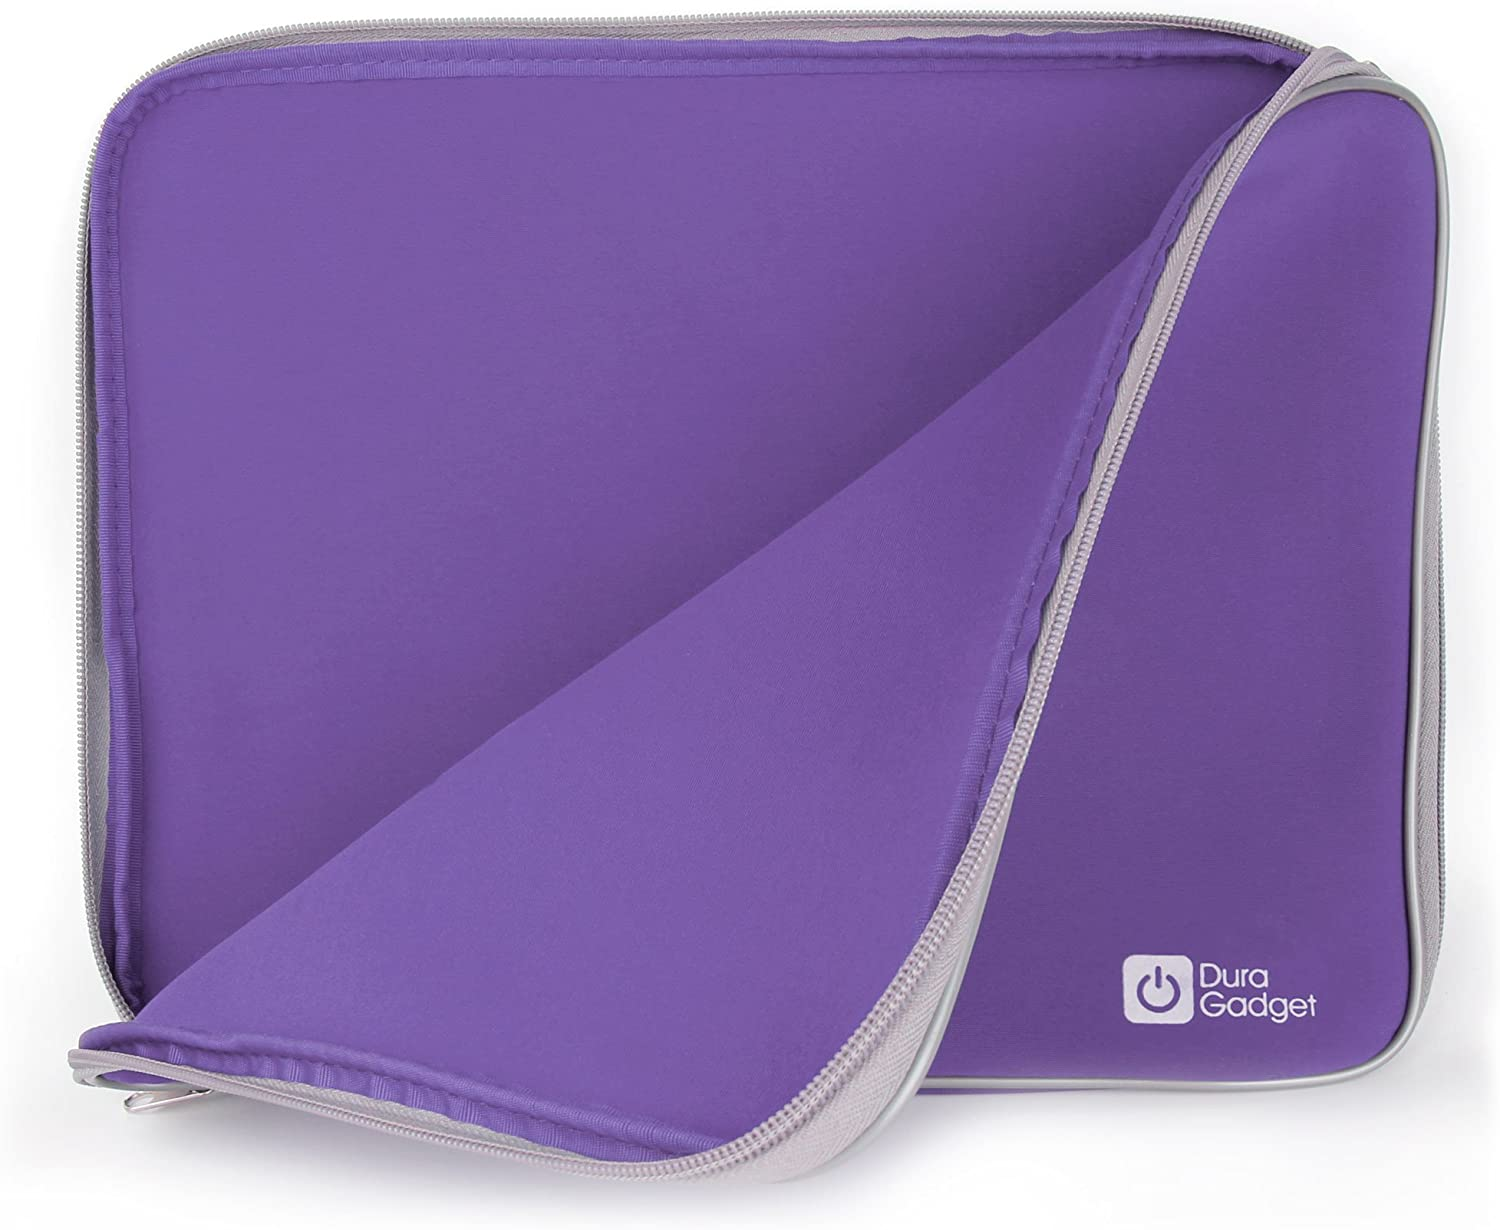 DURAGADGET Purple Water Resistant Case Neoprene Cushioned Max 78% OFF Year-end annual account Carry